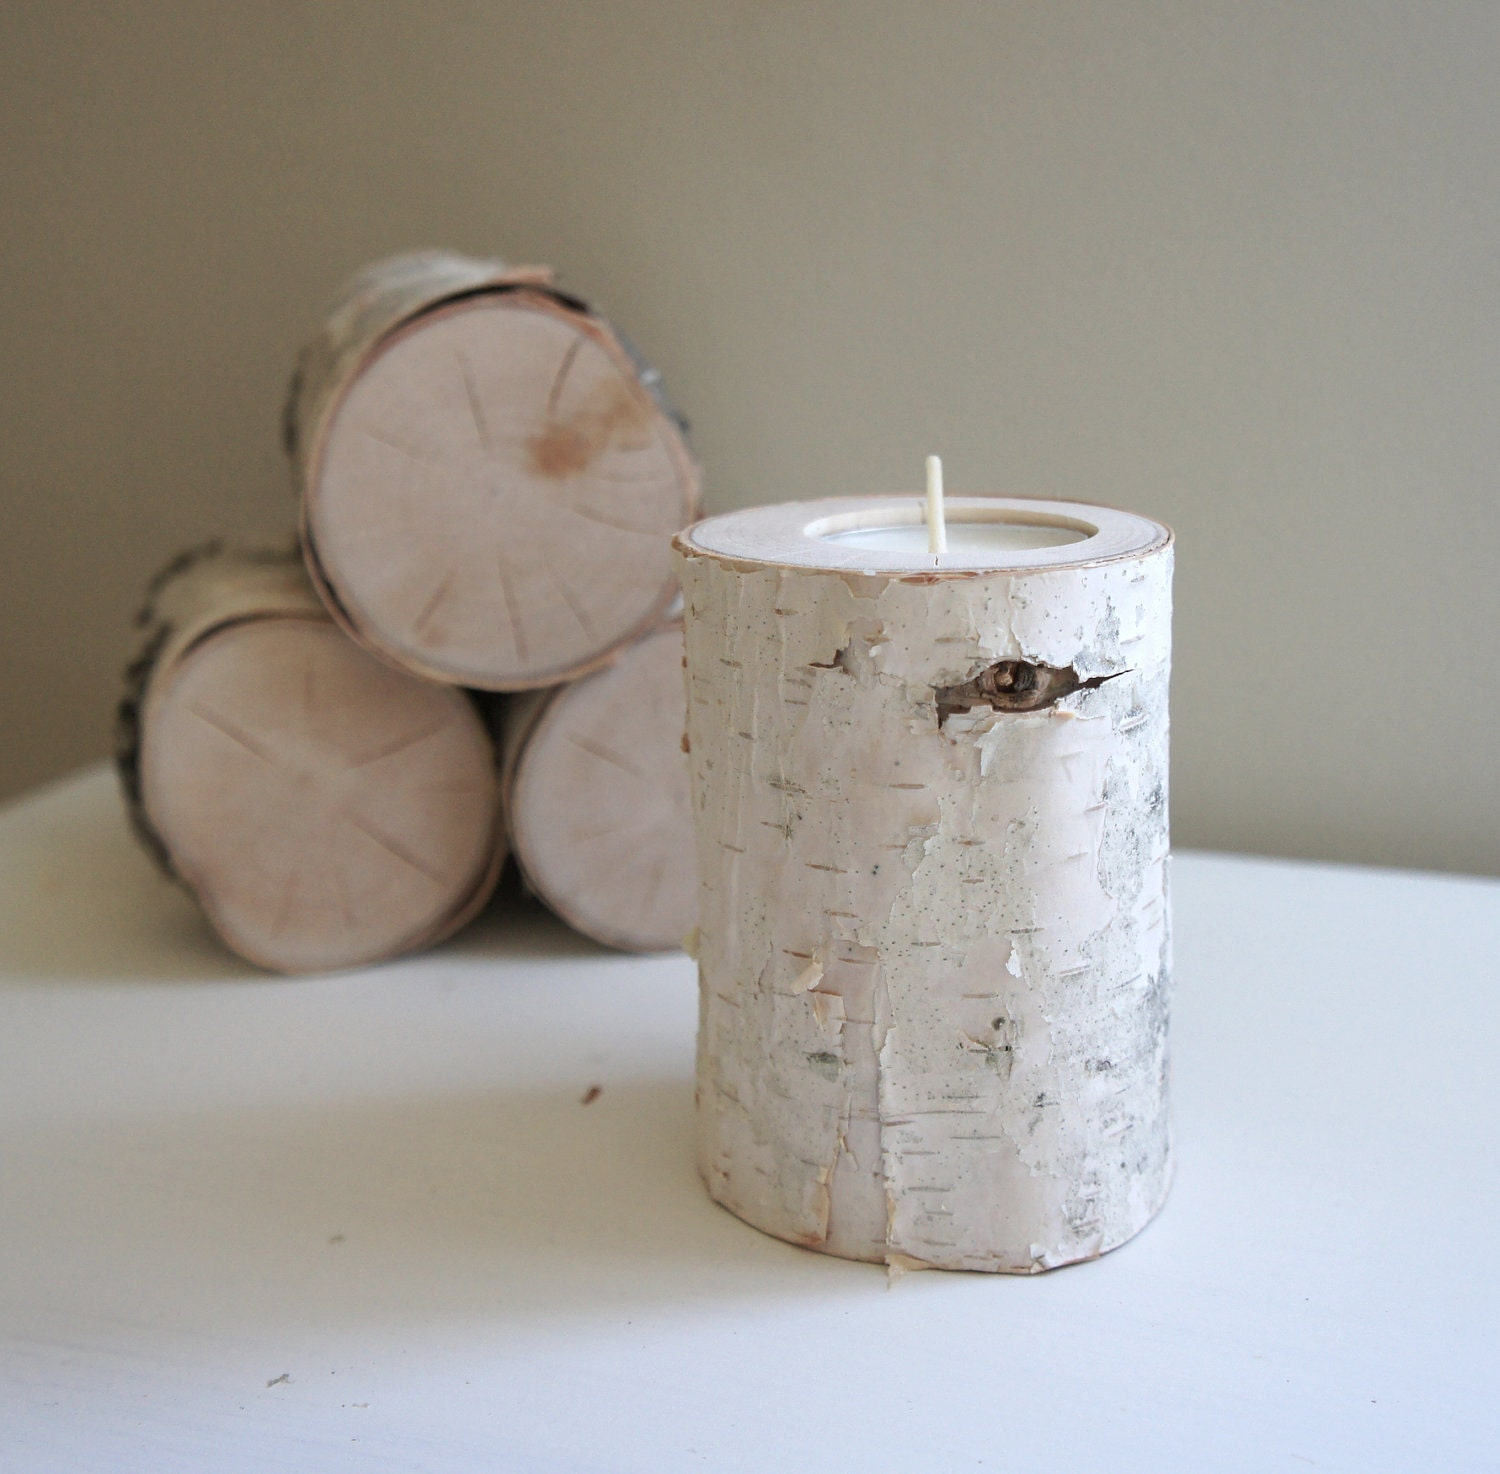 Home Made Modern Craft Of The Week 2 Rustic Christmas Stars: Natural White Birch Wood Candle Holder Single